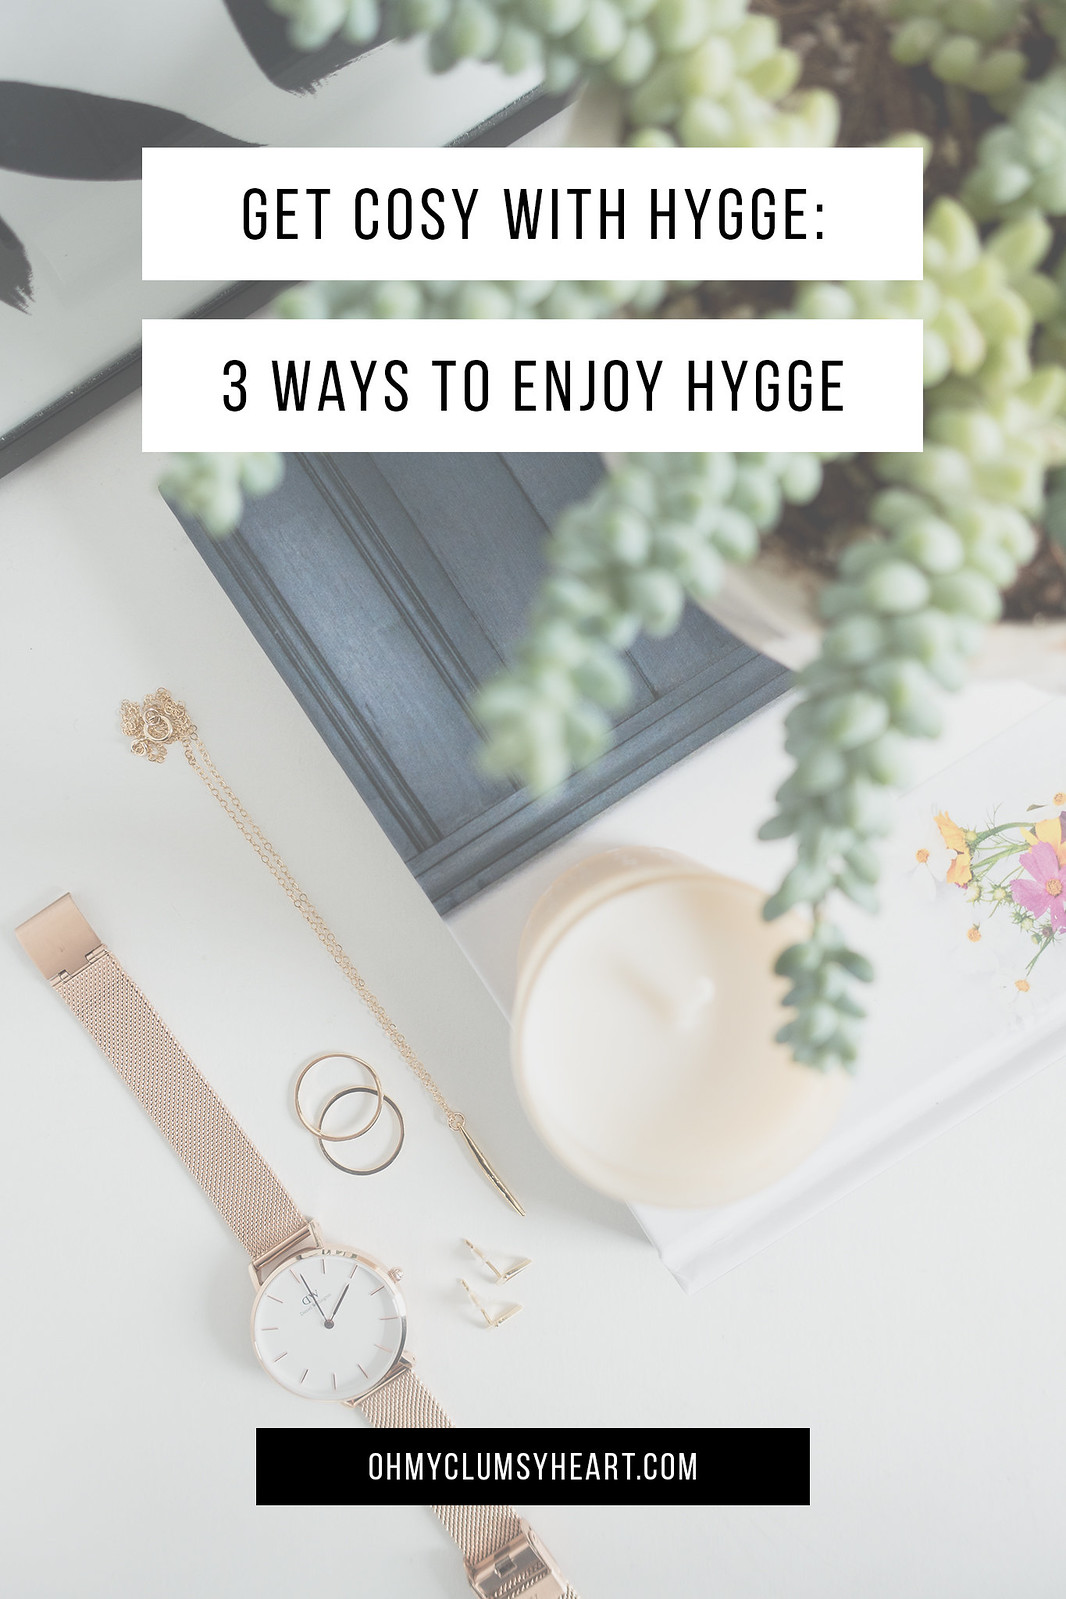 Get Cosy With Hygge